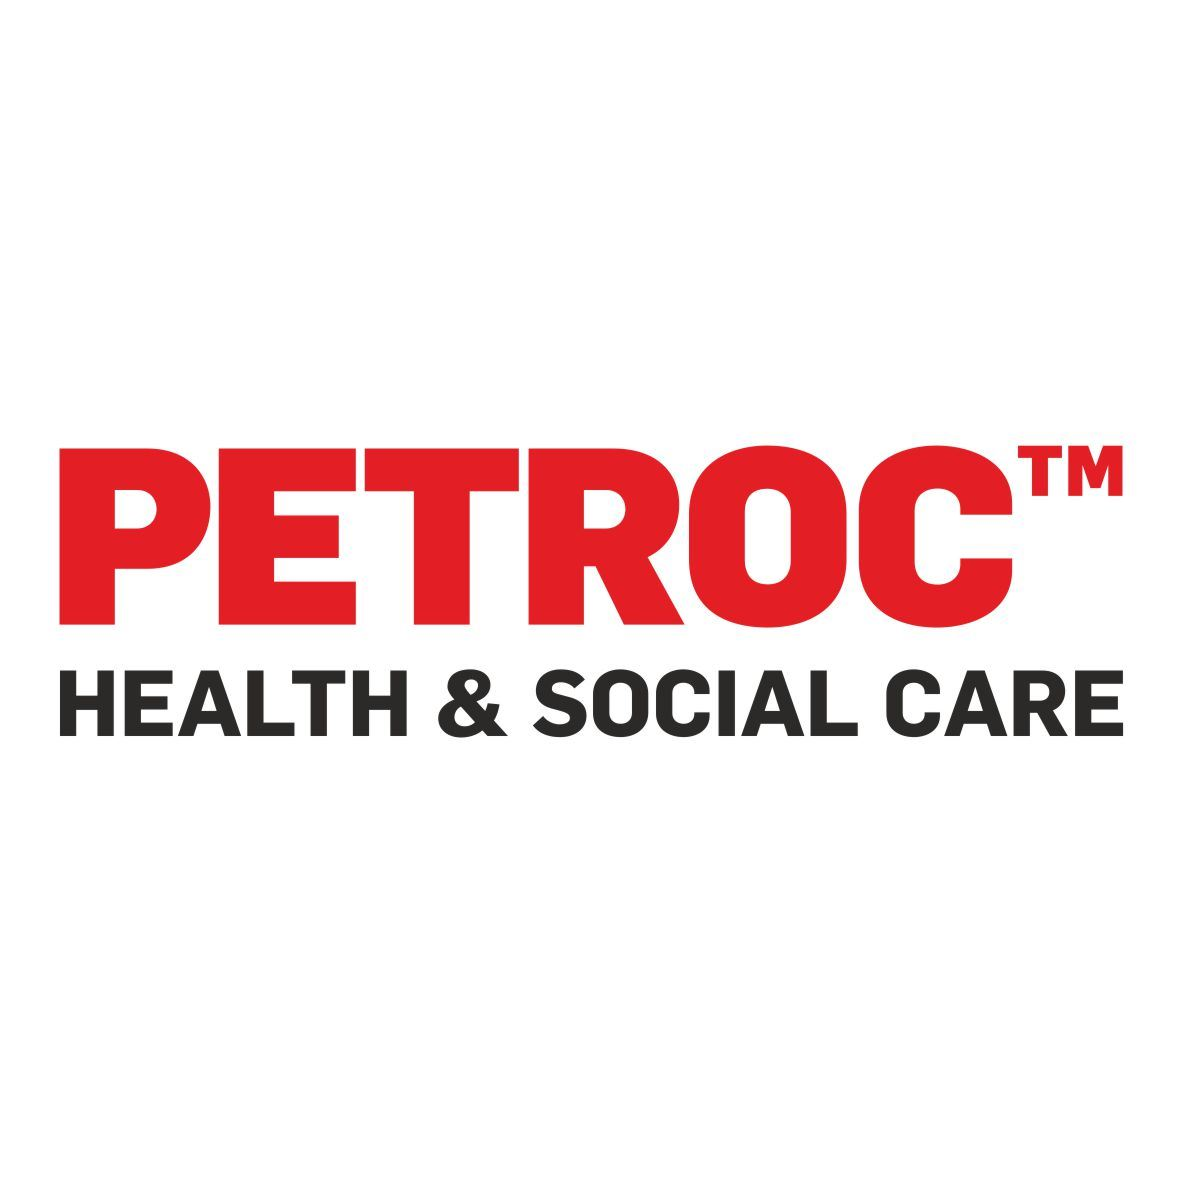 Petroc Health and Social Care